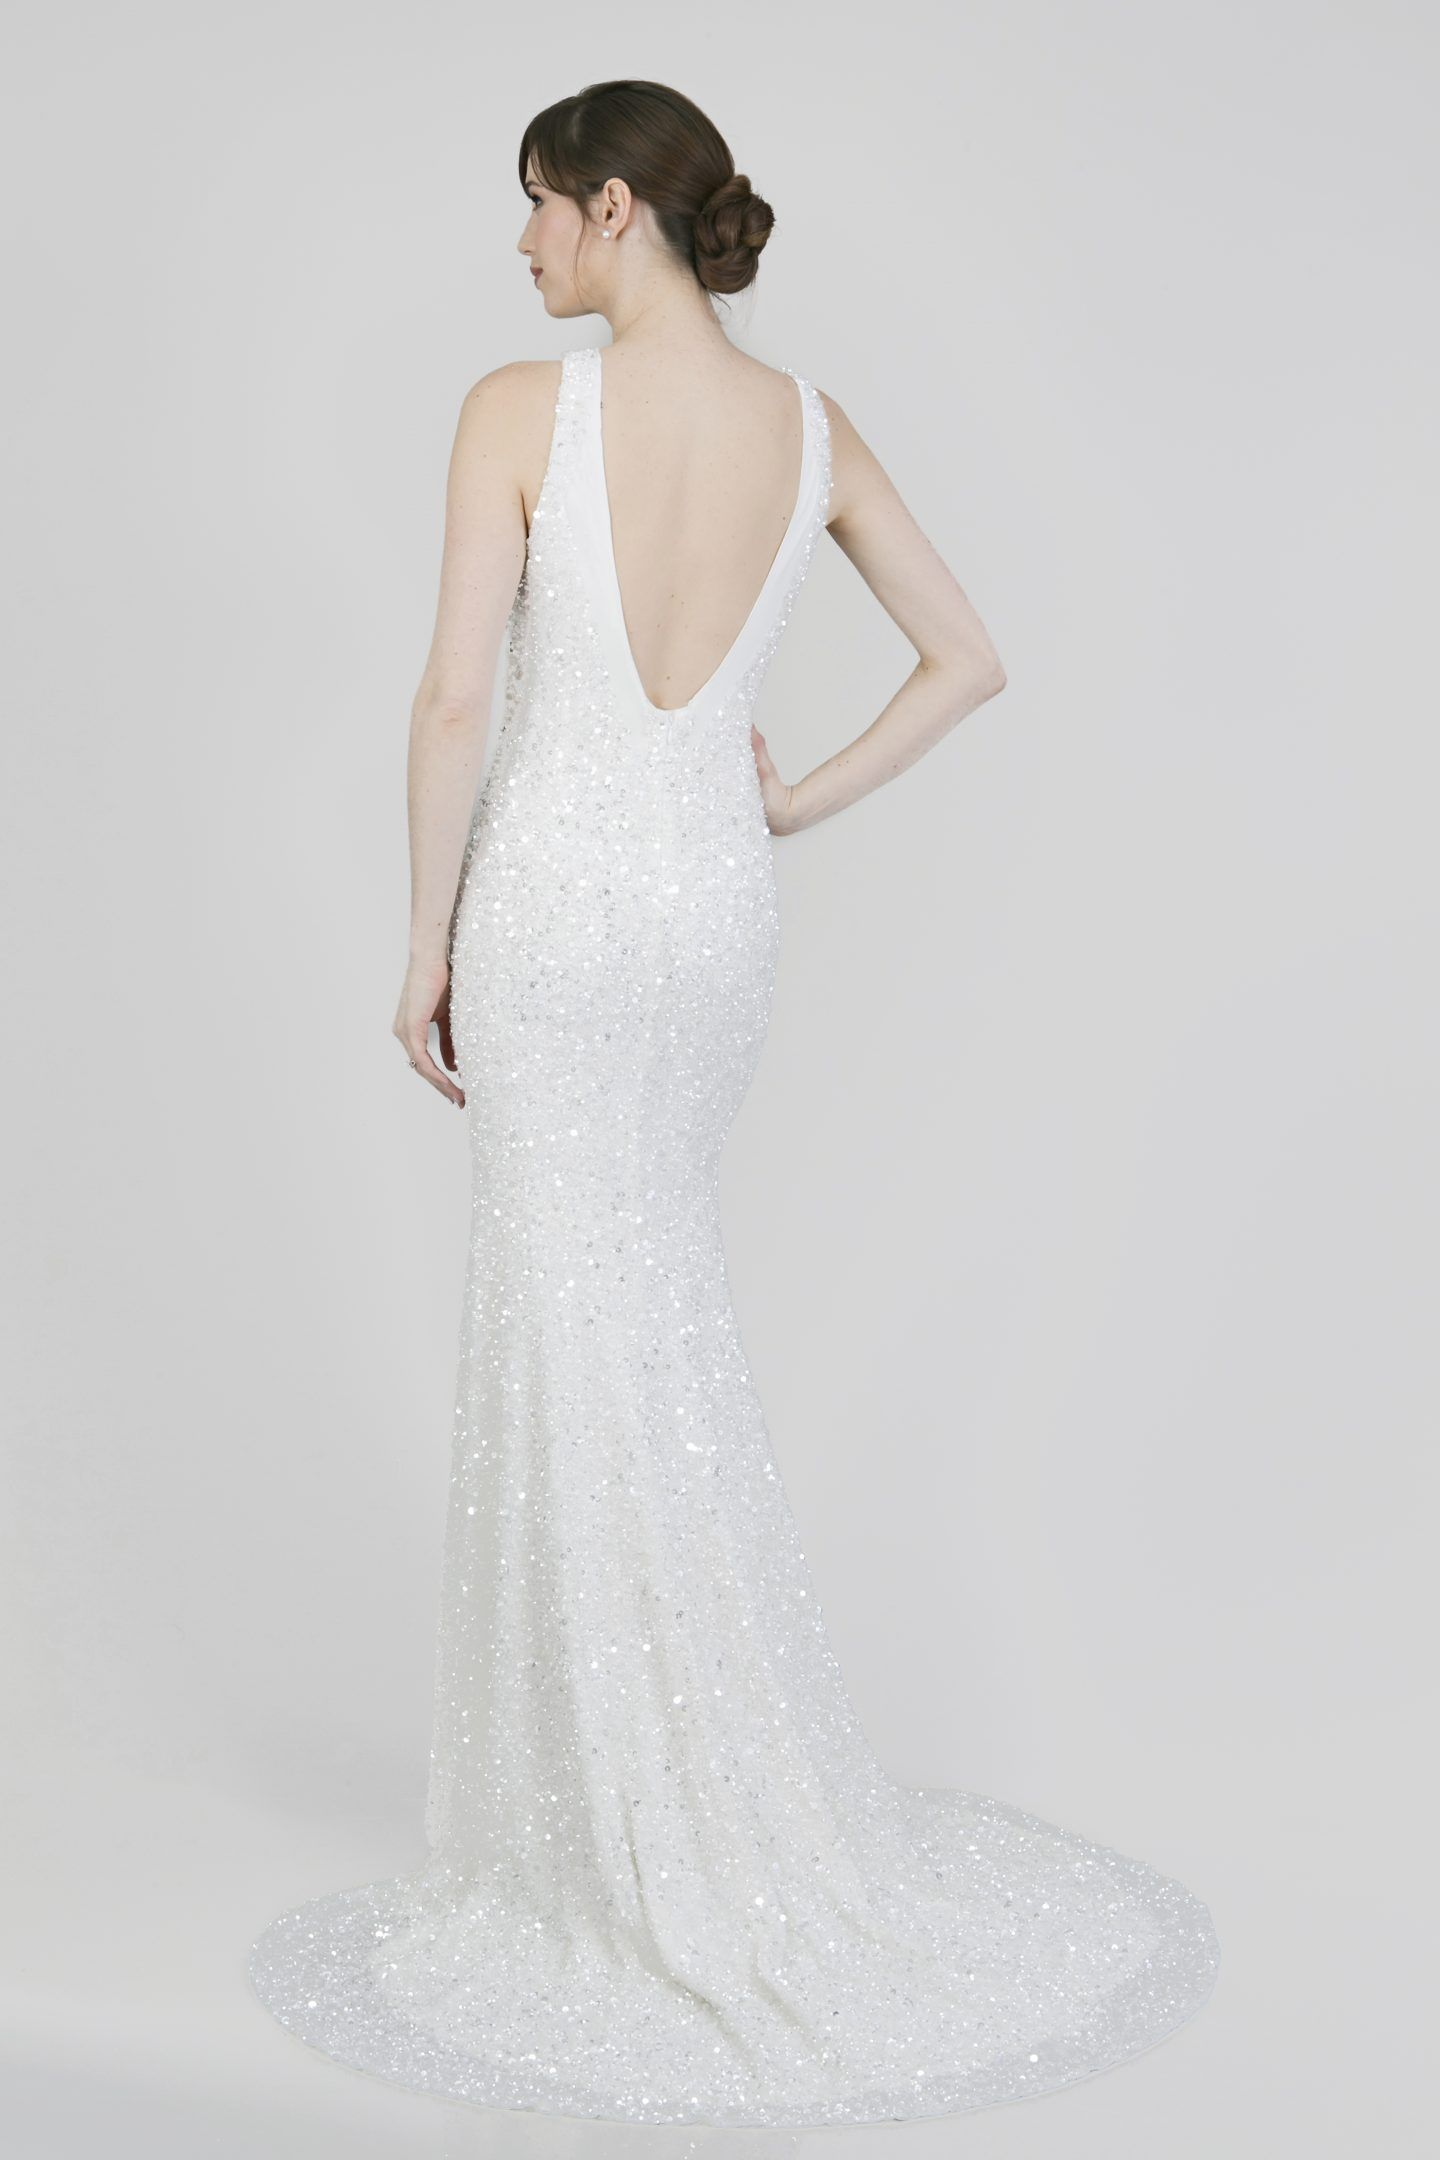 Theia Lenni Gown - Available at Love and Lace Bridal Salon Irvine ...